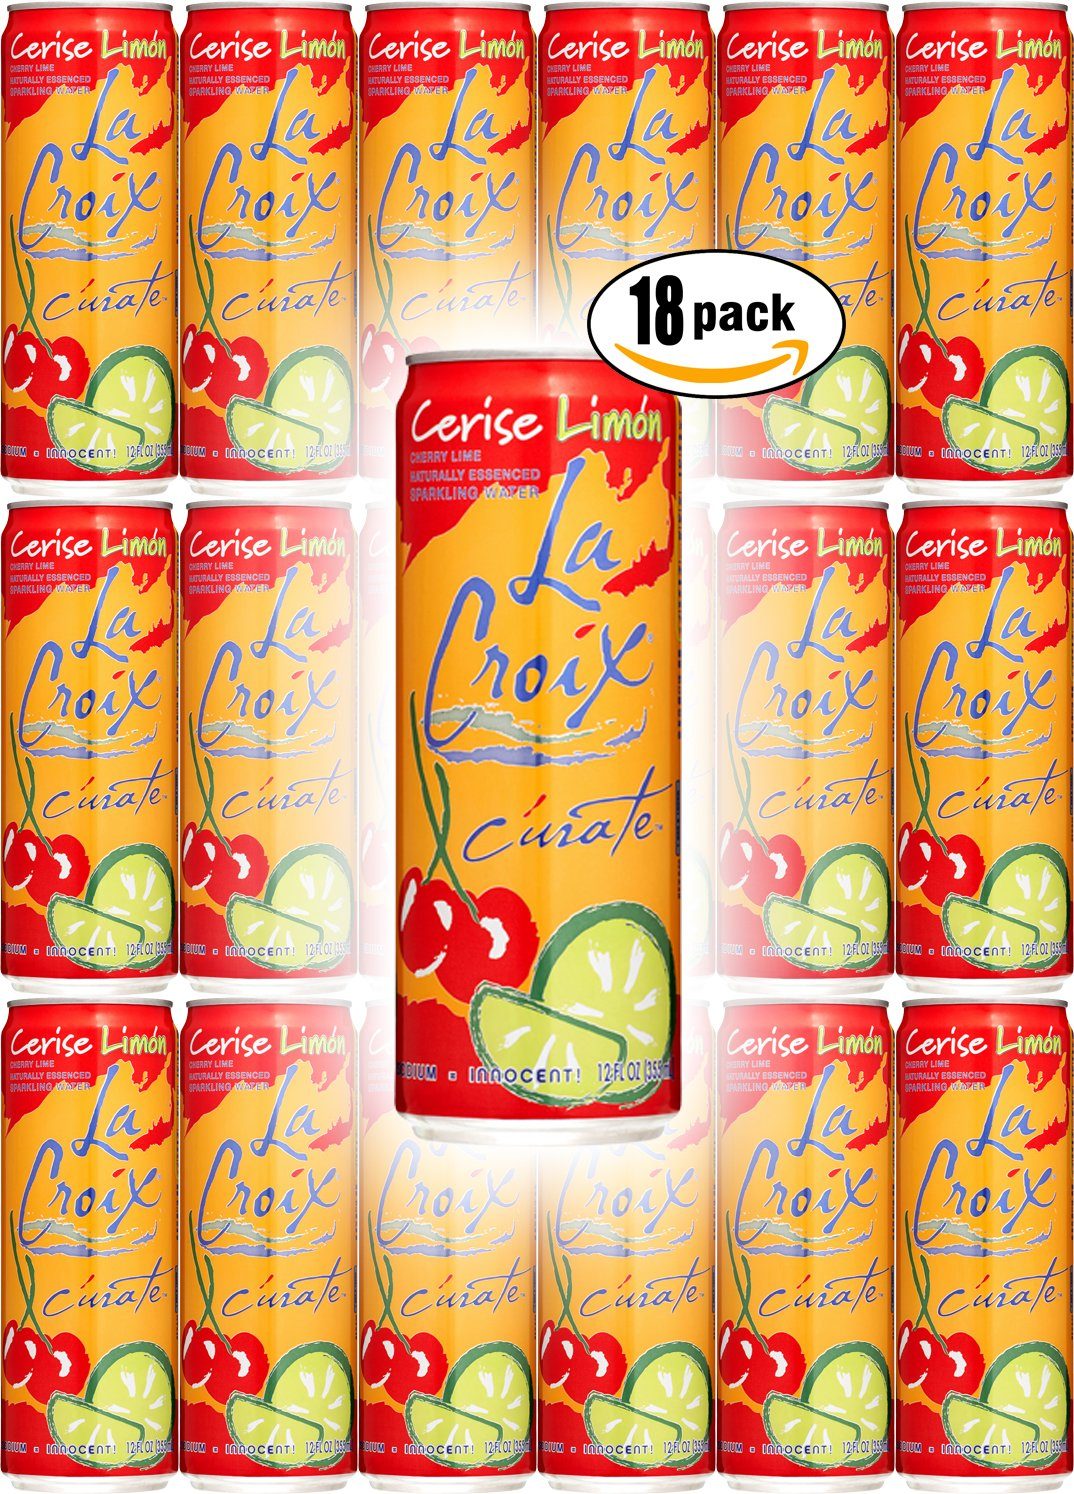 La Croix Cerise Limon, Cherry Lime Flavored Naturally Essenced Sparkling Water, 12oz Tall Can (Pack of 18, Total of 216 Oz) by La Croix